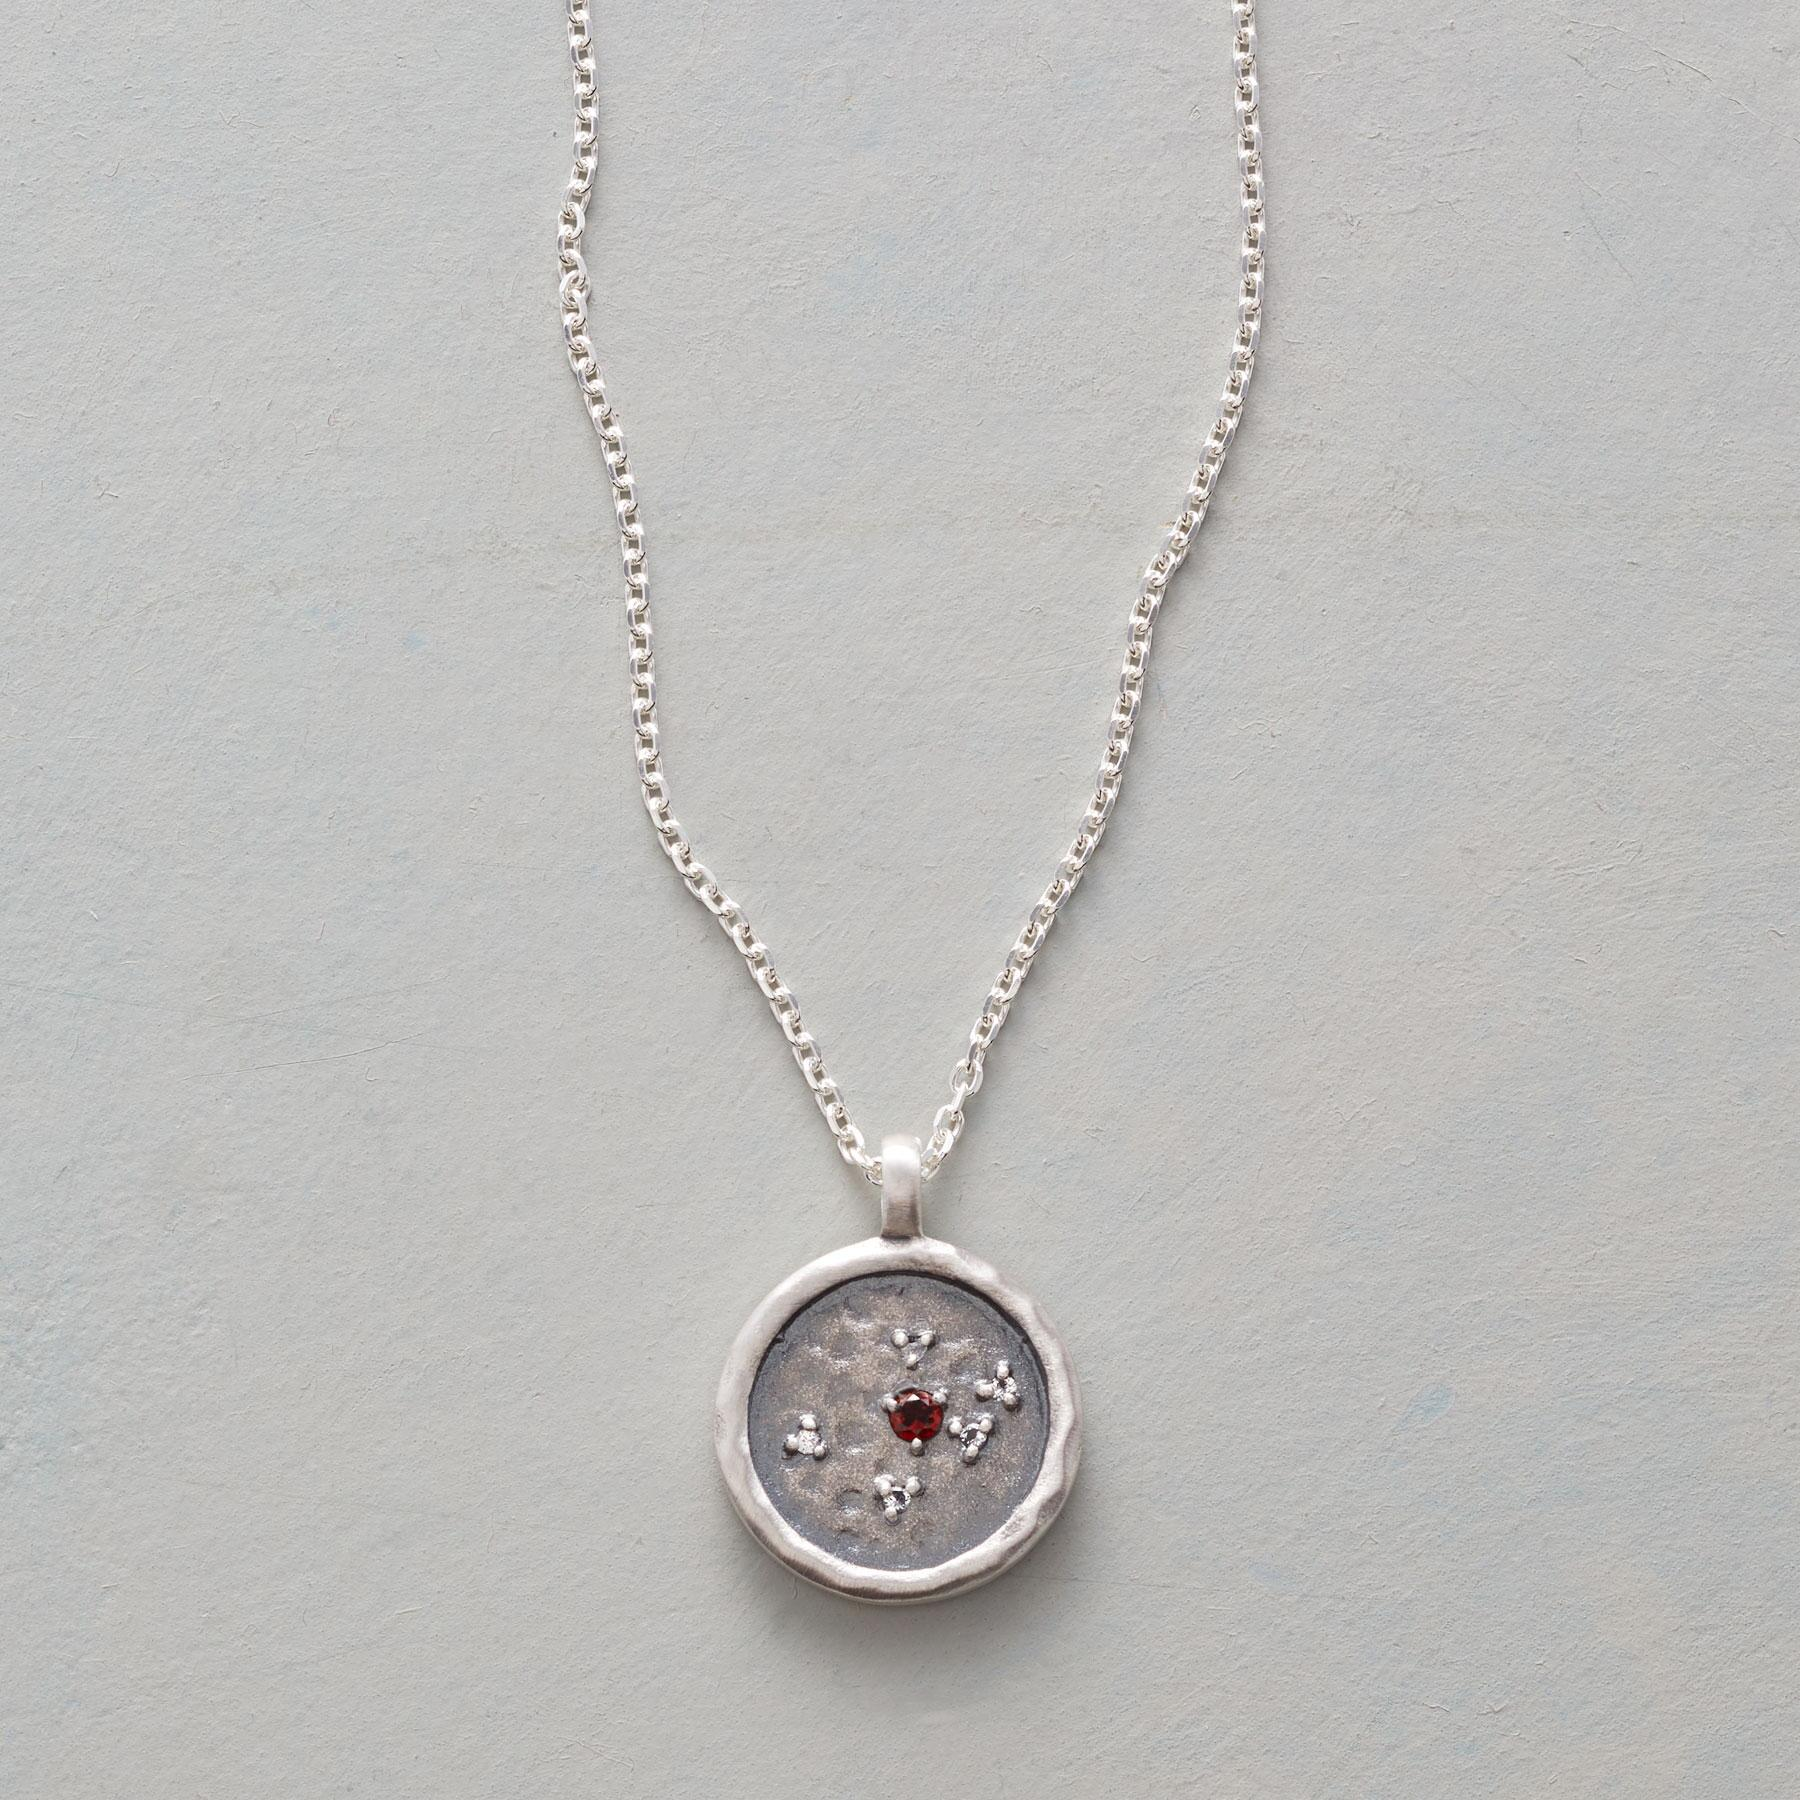 DESTINY BIRTHSTONE NECKLACE: View 1